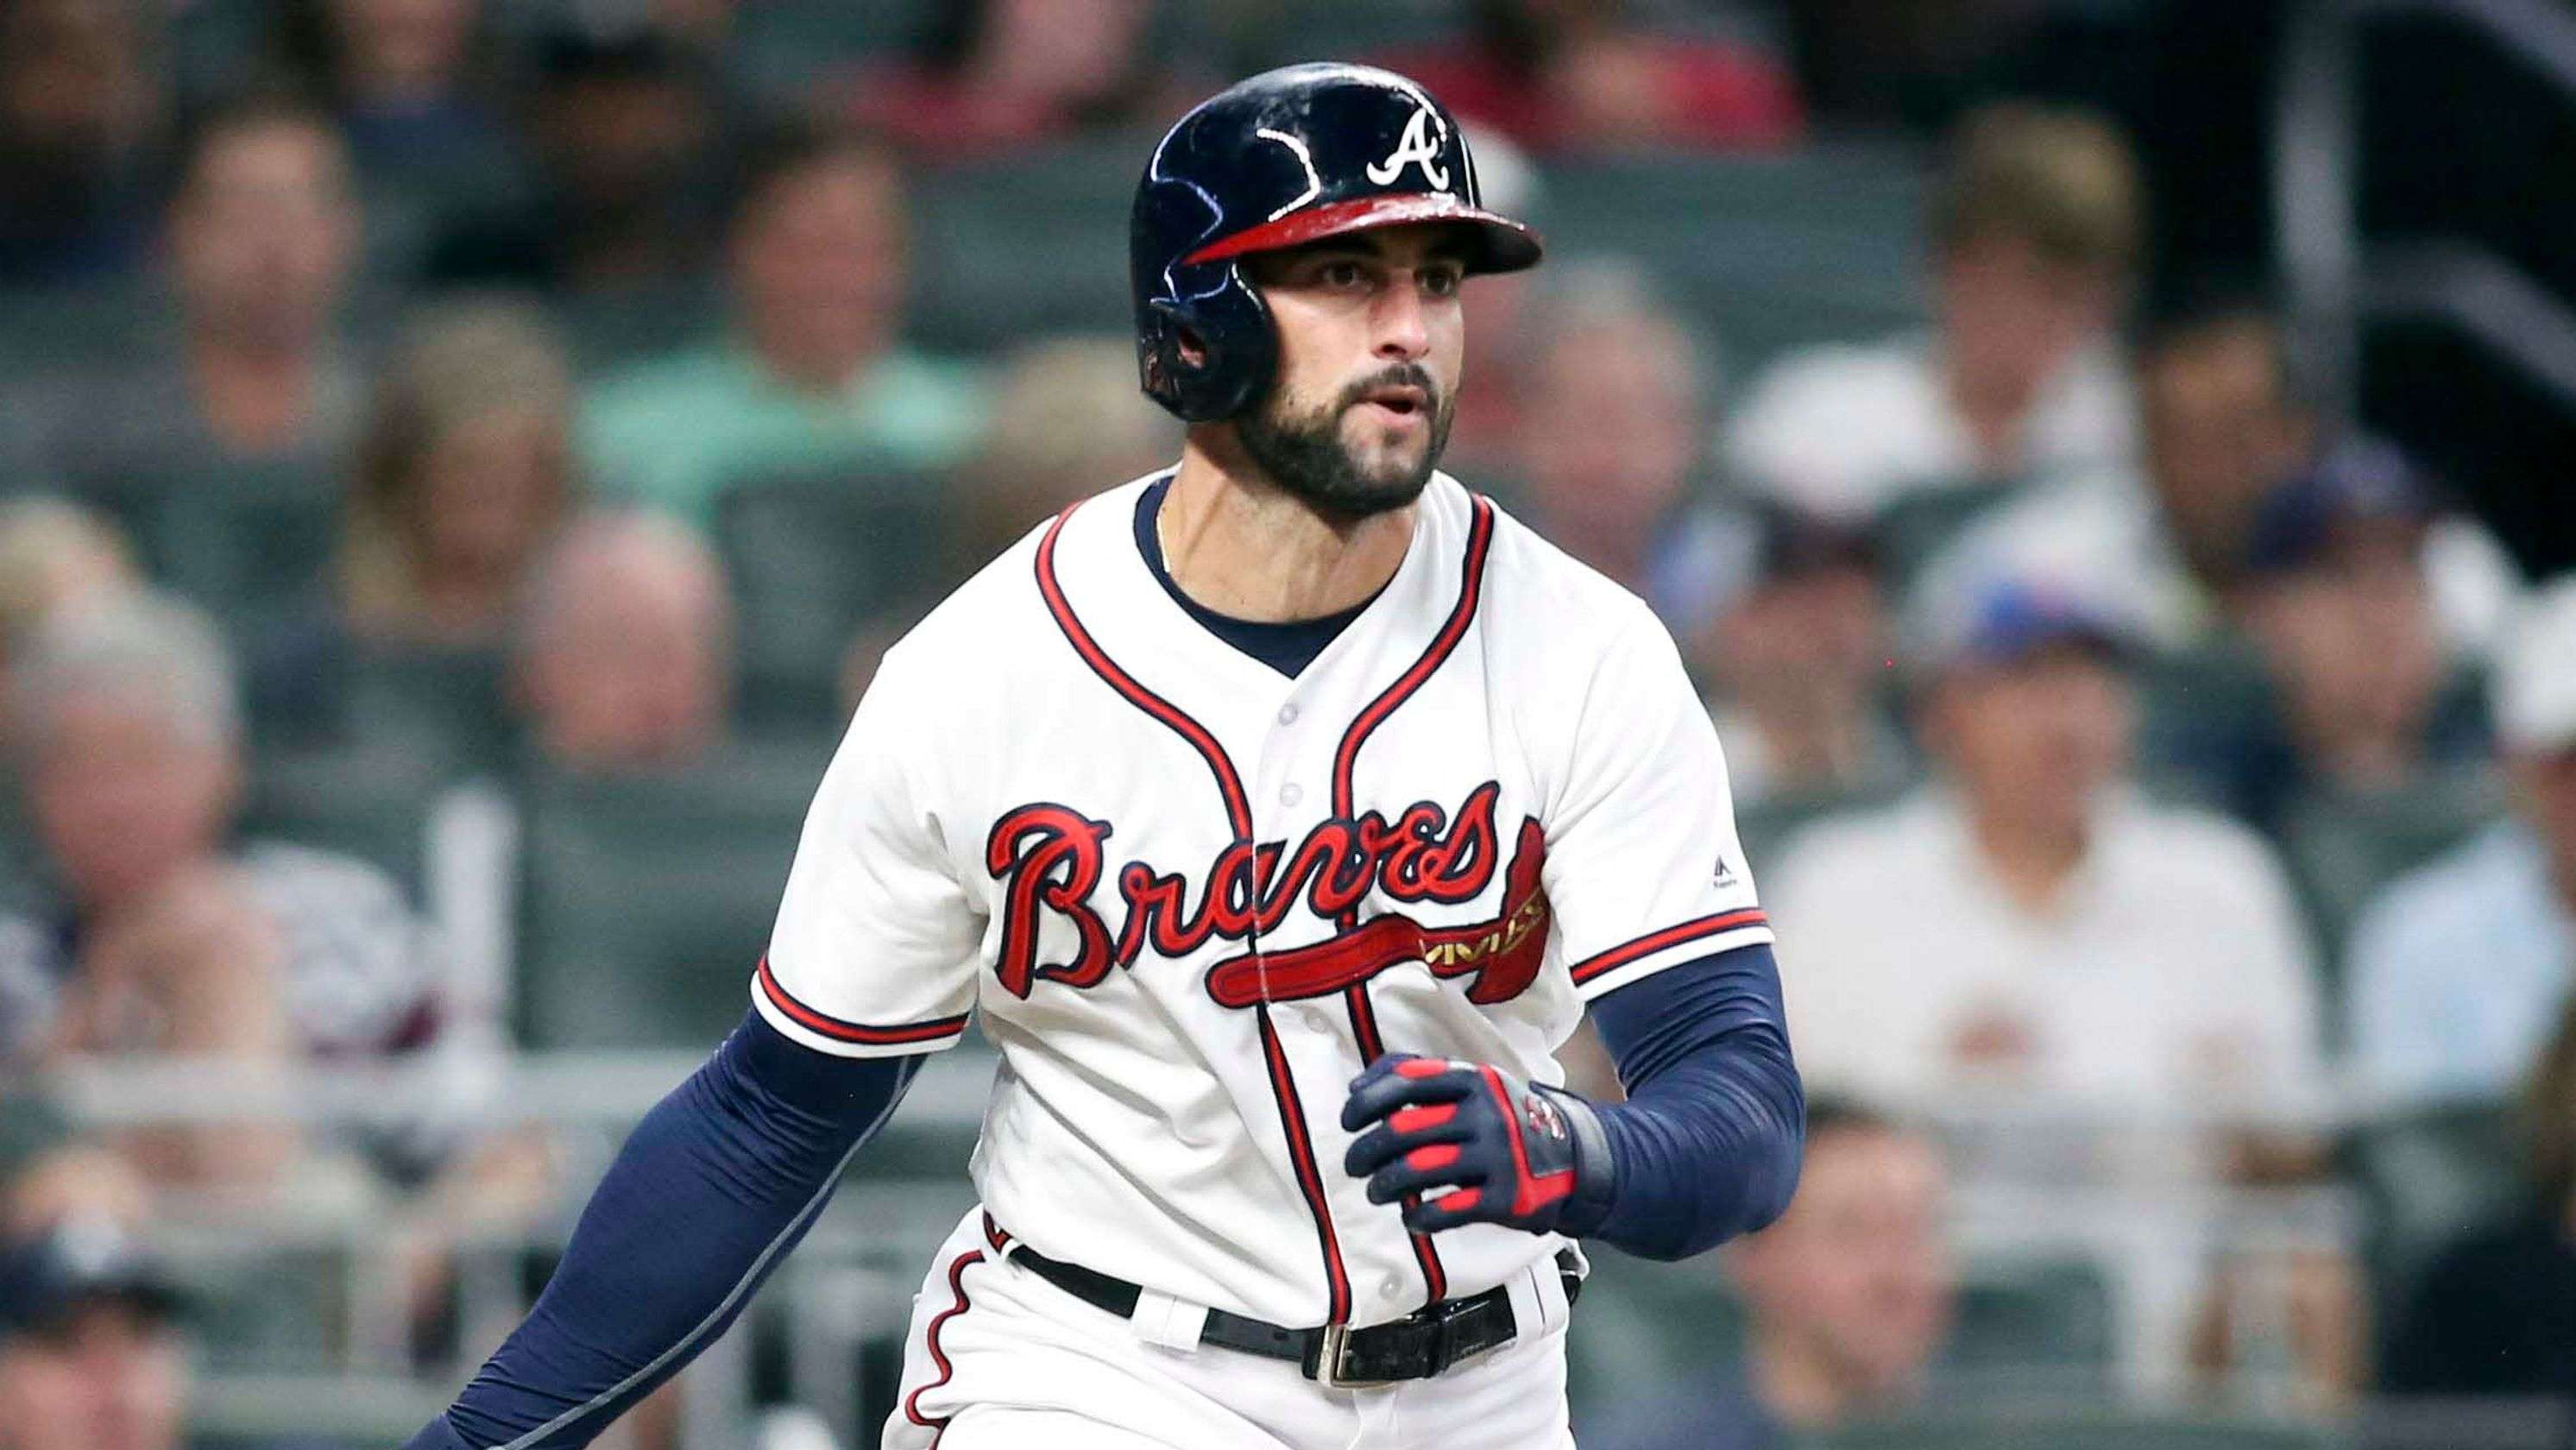 Five guns, $20,000 cash stolen from MLB All-Star Nick Markakis' Atlanta home